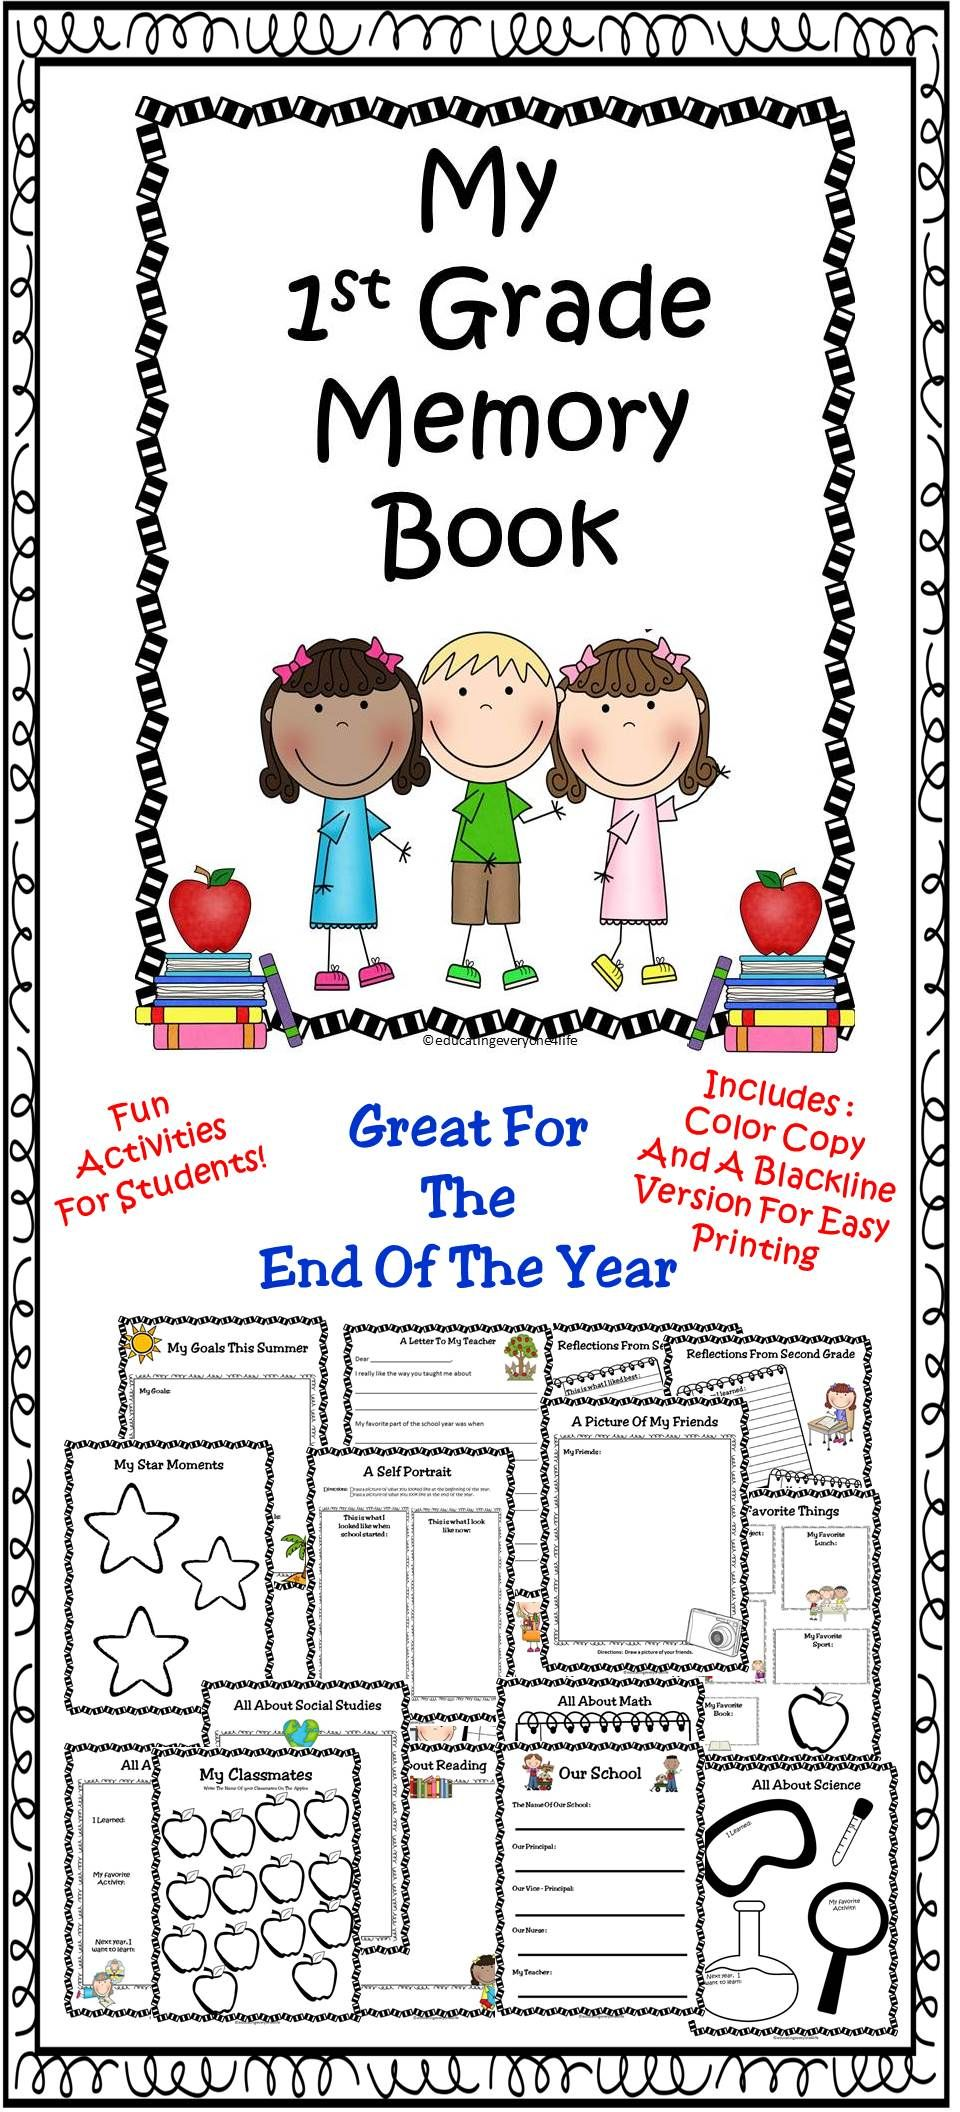 End Of Year 1st Grade Memory Book - Includes many fun activities for  children to complete at the end of the school year. This makes a great  keepsake for ...